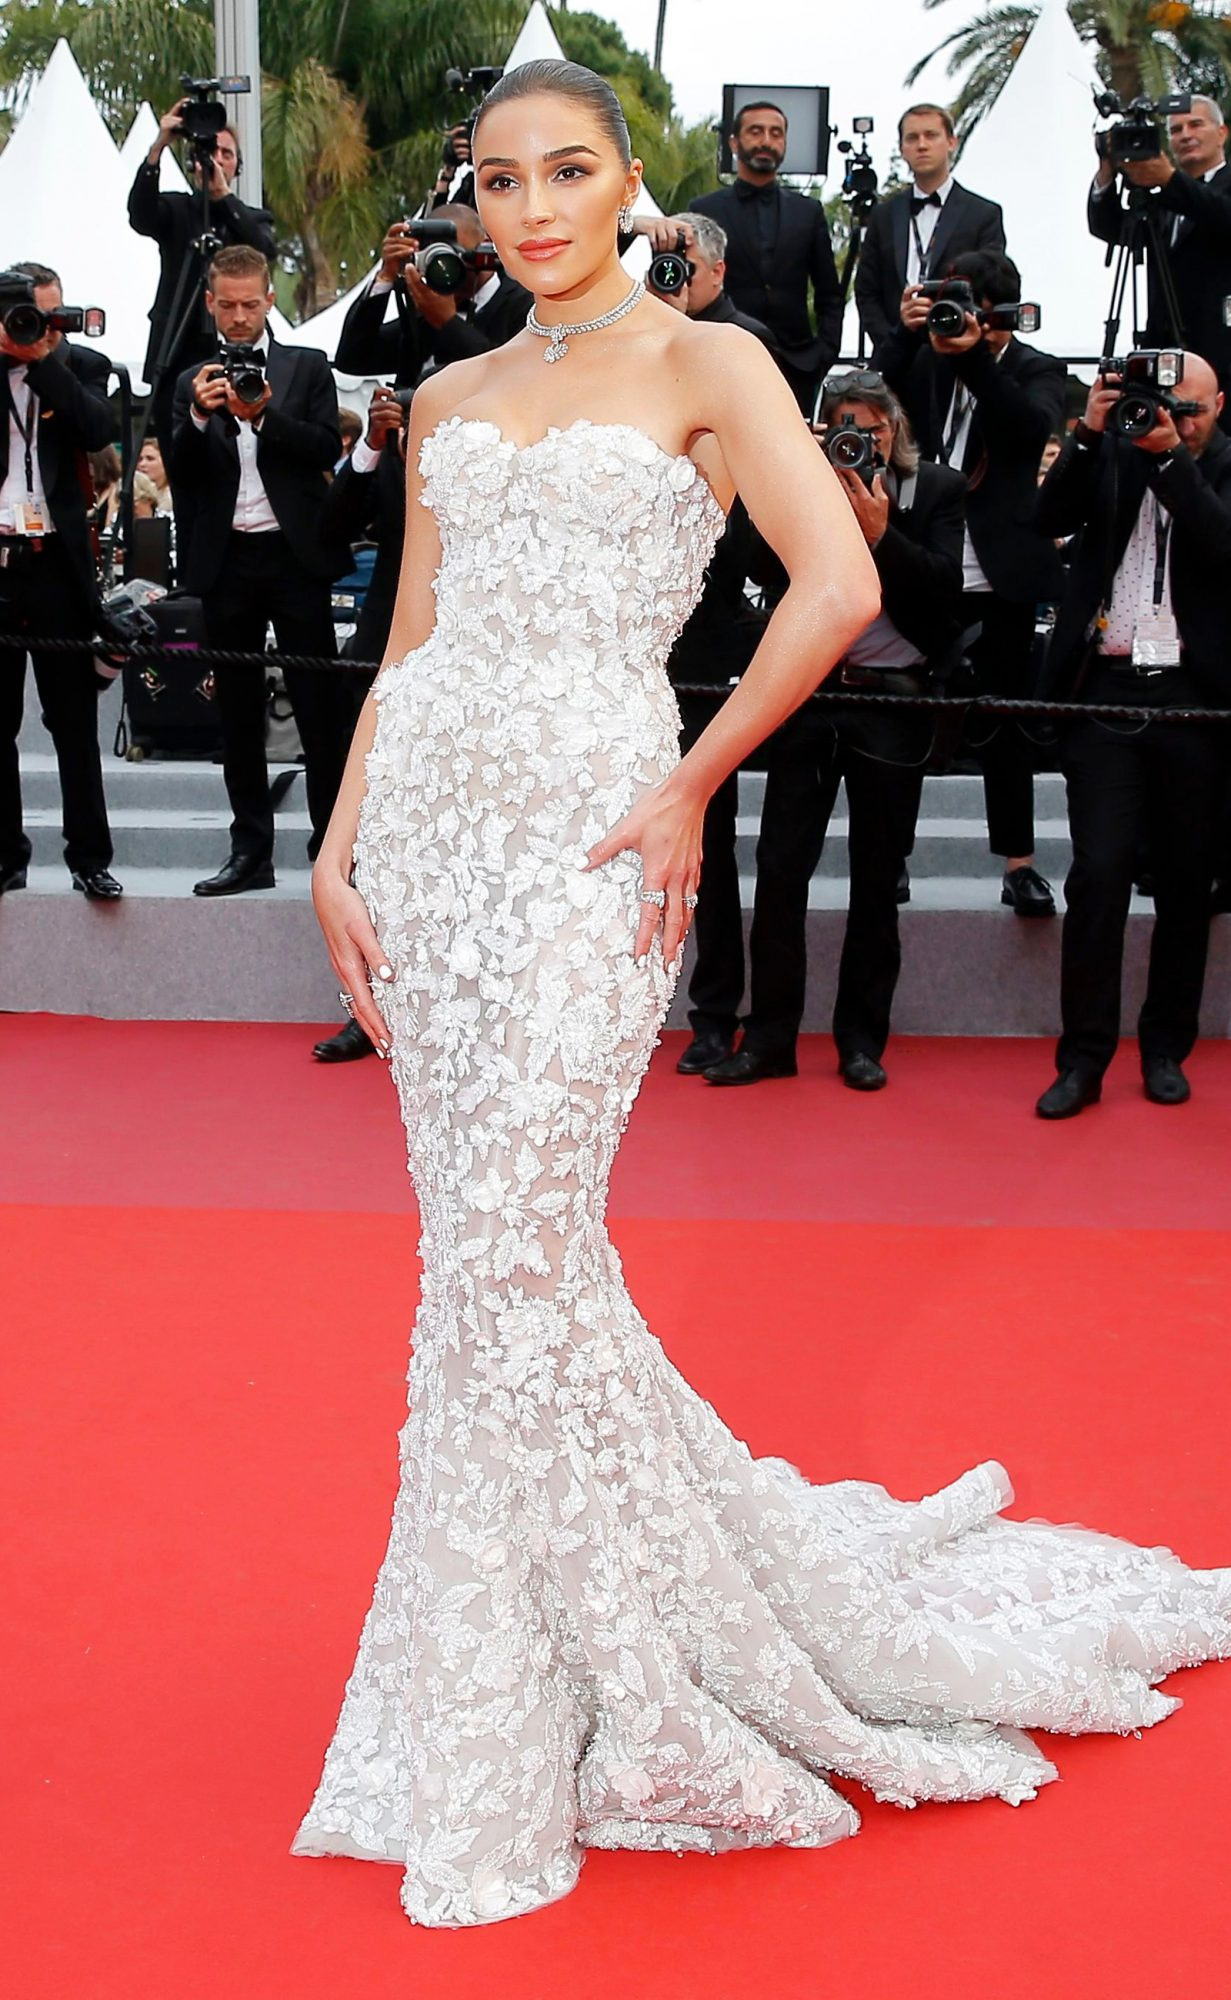 Sibyl Premiere - 72nd Cannes Film Festival, France - 24 May 2019